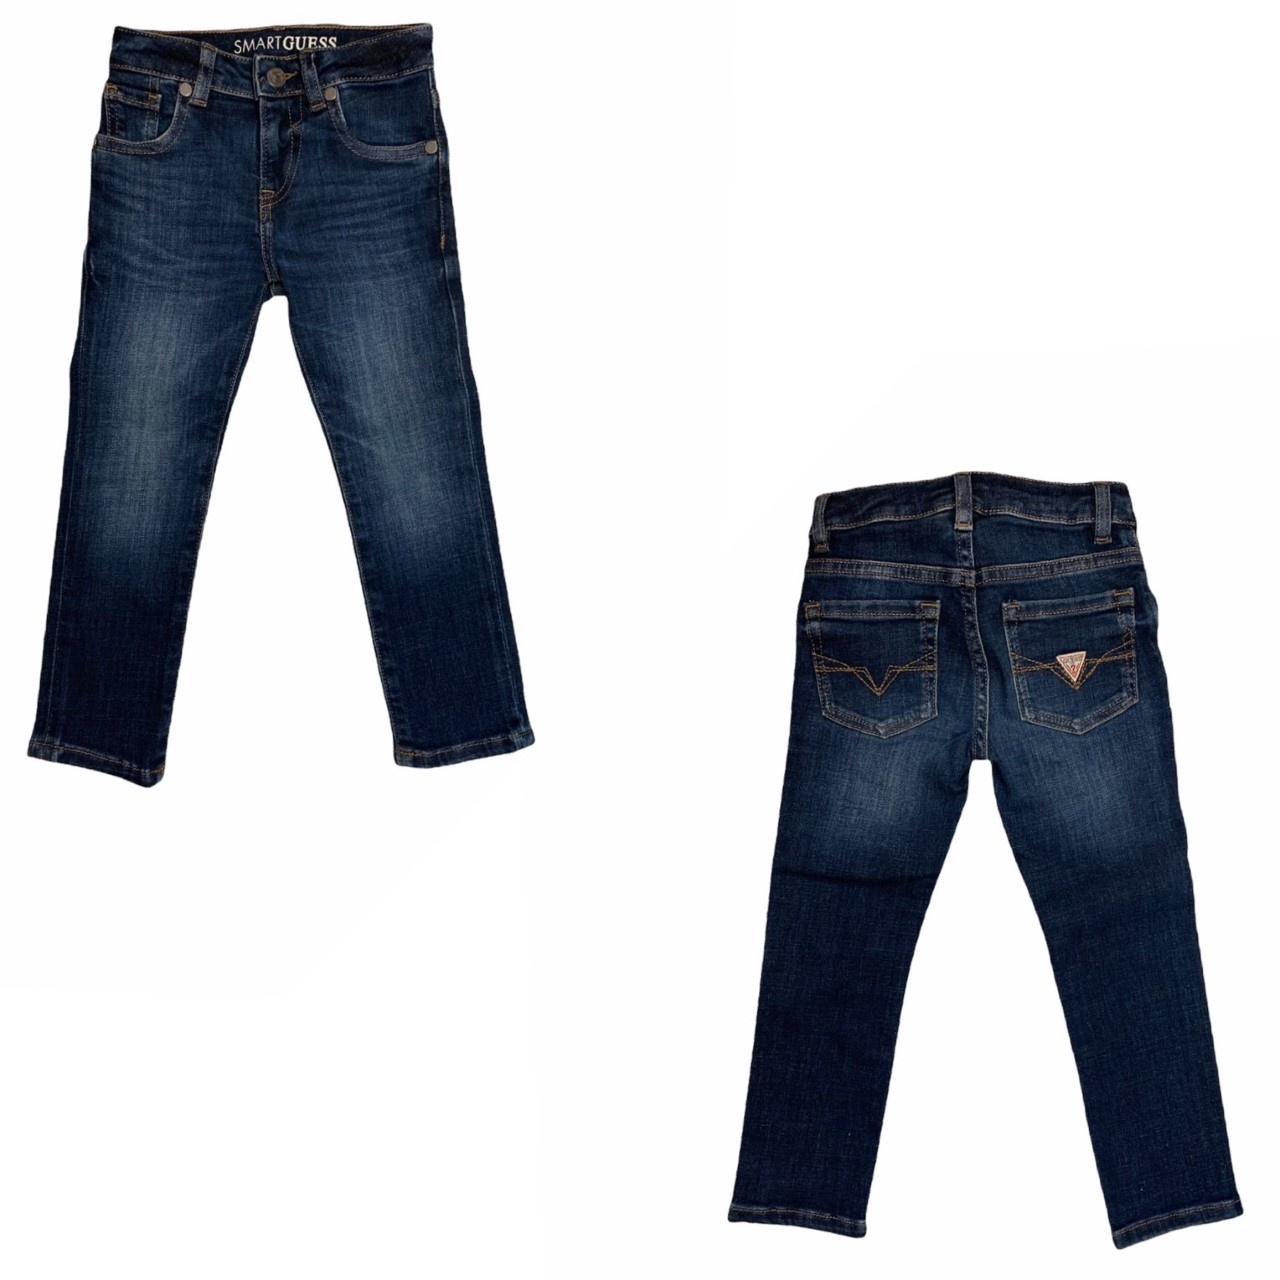 Guess Guess Boys Skinny Jeans AW21